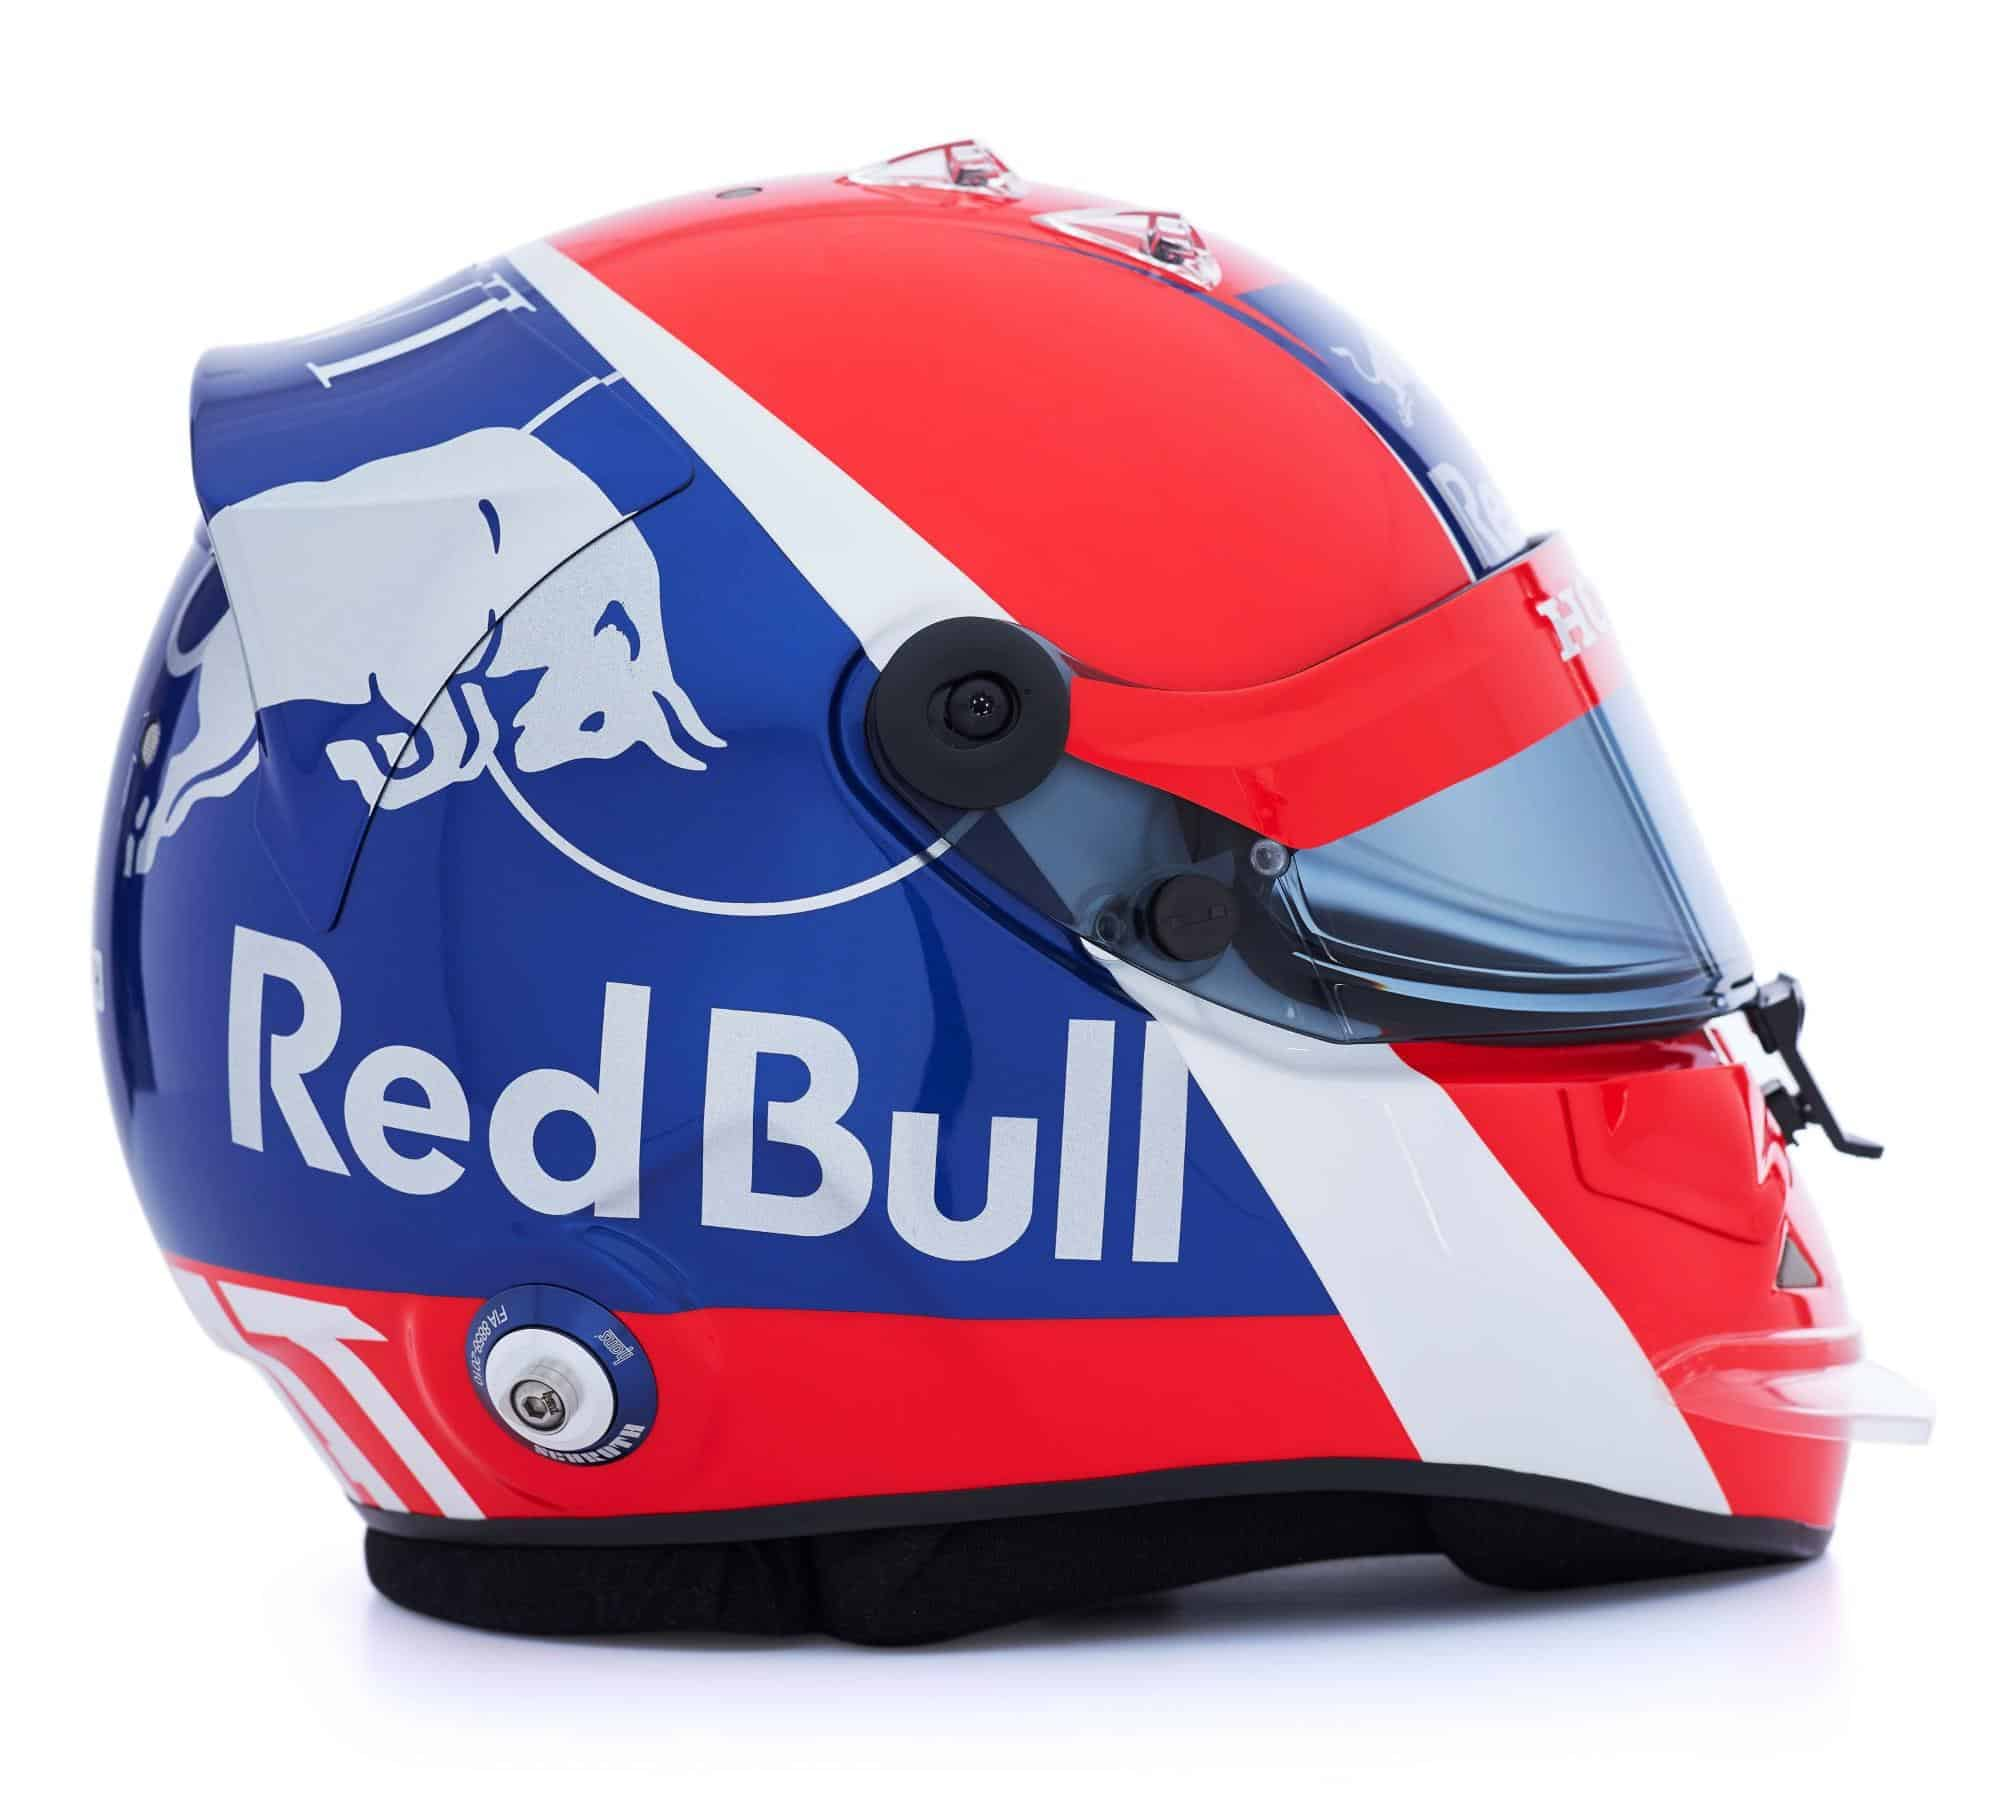 2019 F1 Daniil Kvyat helmet Toro Rosso Honda right side Photo Red Bull Edited by MAXF1net